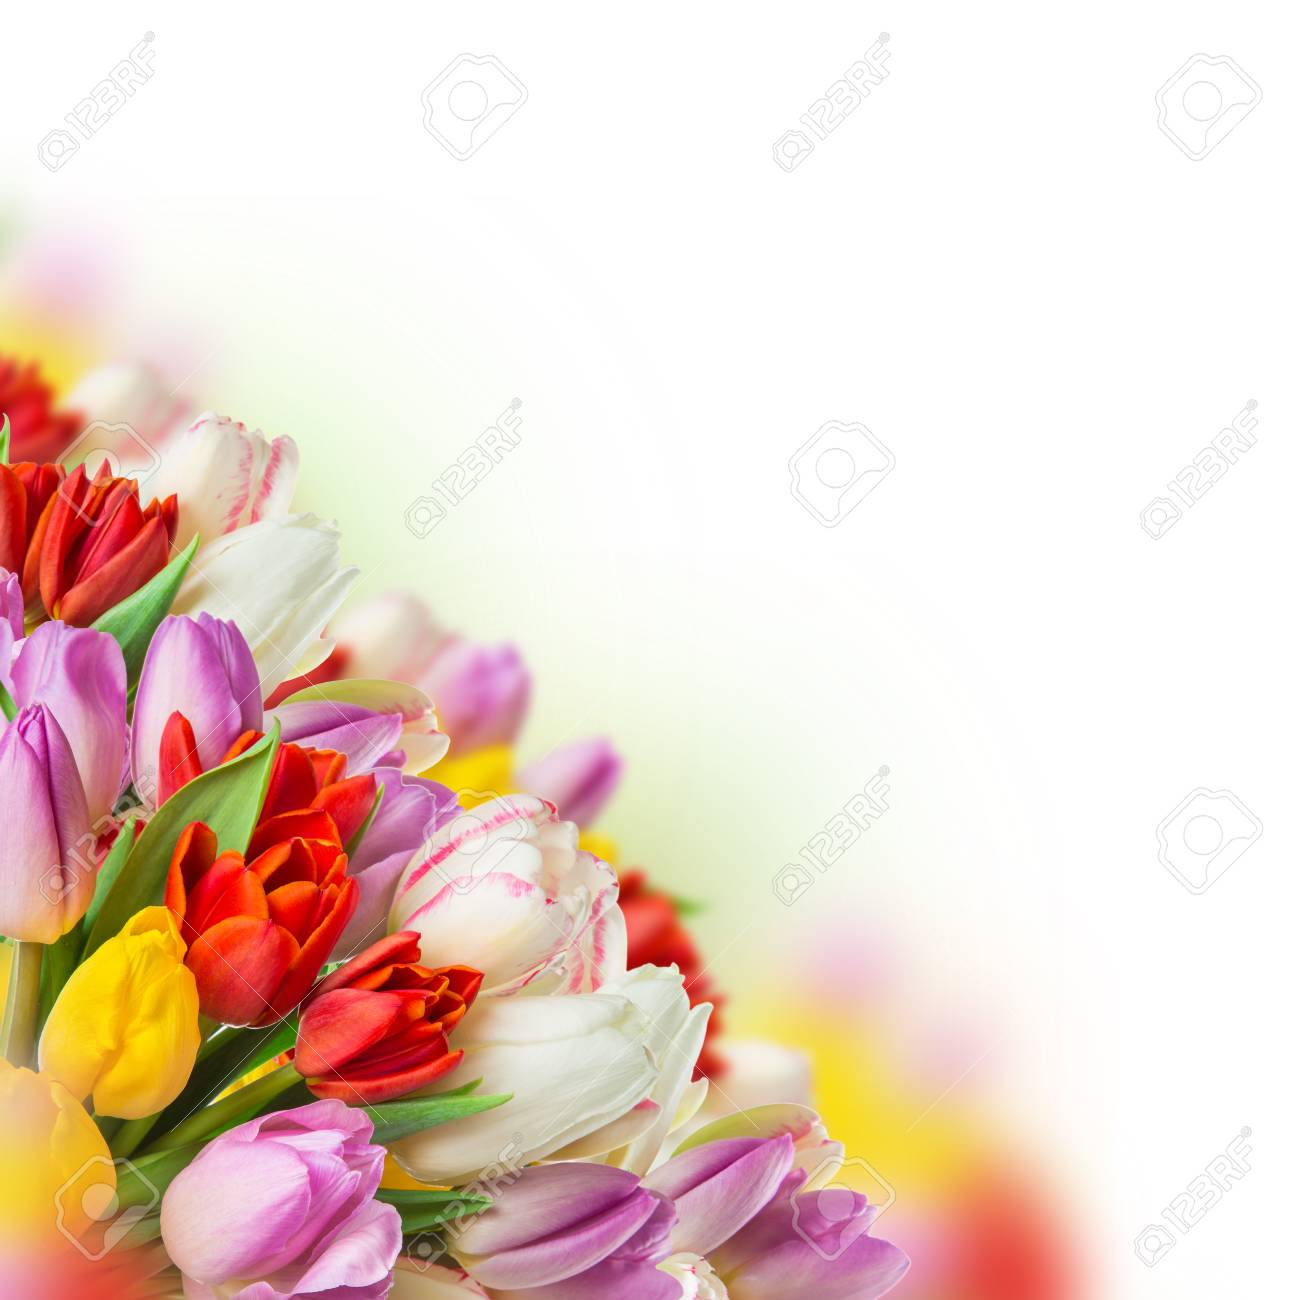 Tulips Over Blurred Green Background Bouquet Of Spring Easter